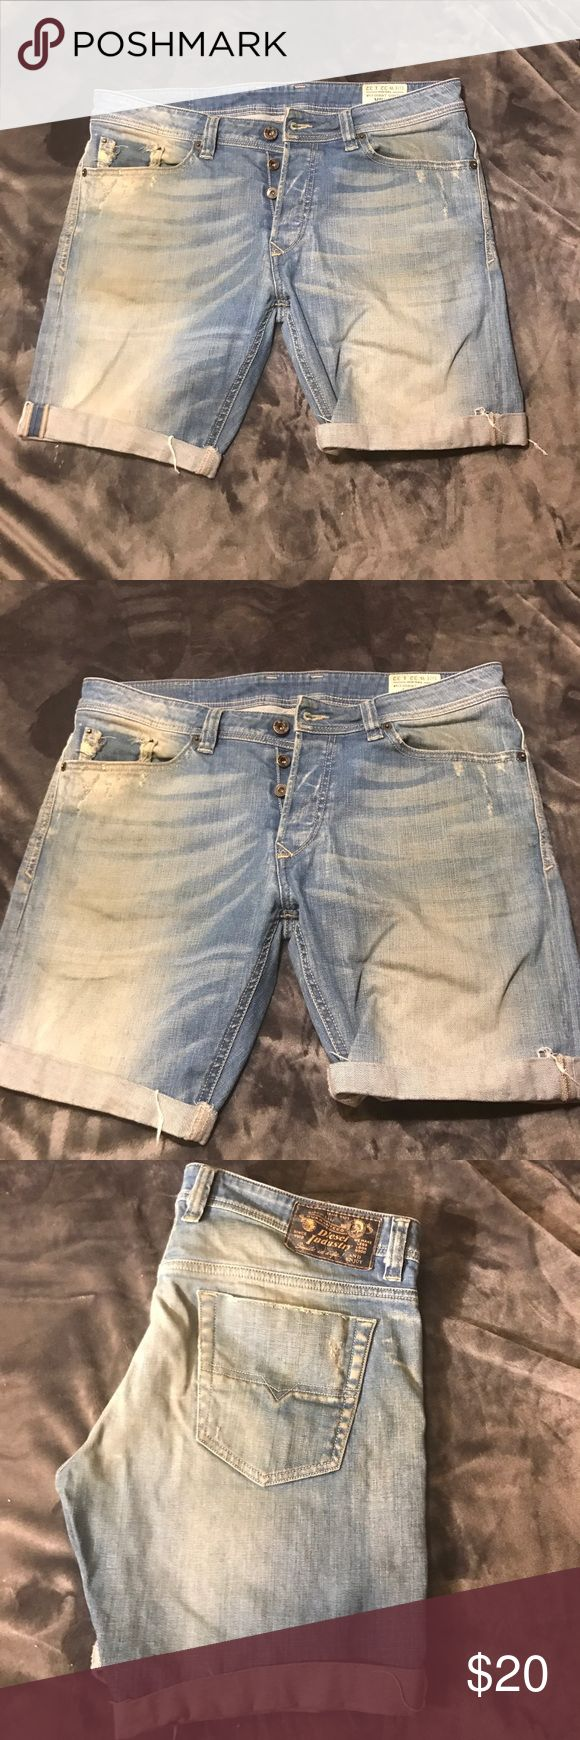 Diesel vintage Bermuda jeans shorts Vintage. W32  show signs of wear. Specially on front on wrinkles. Great if you want to DIY distress shorts. Diesel Shorts Bermudas